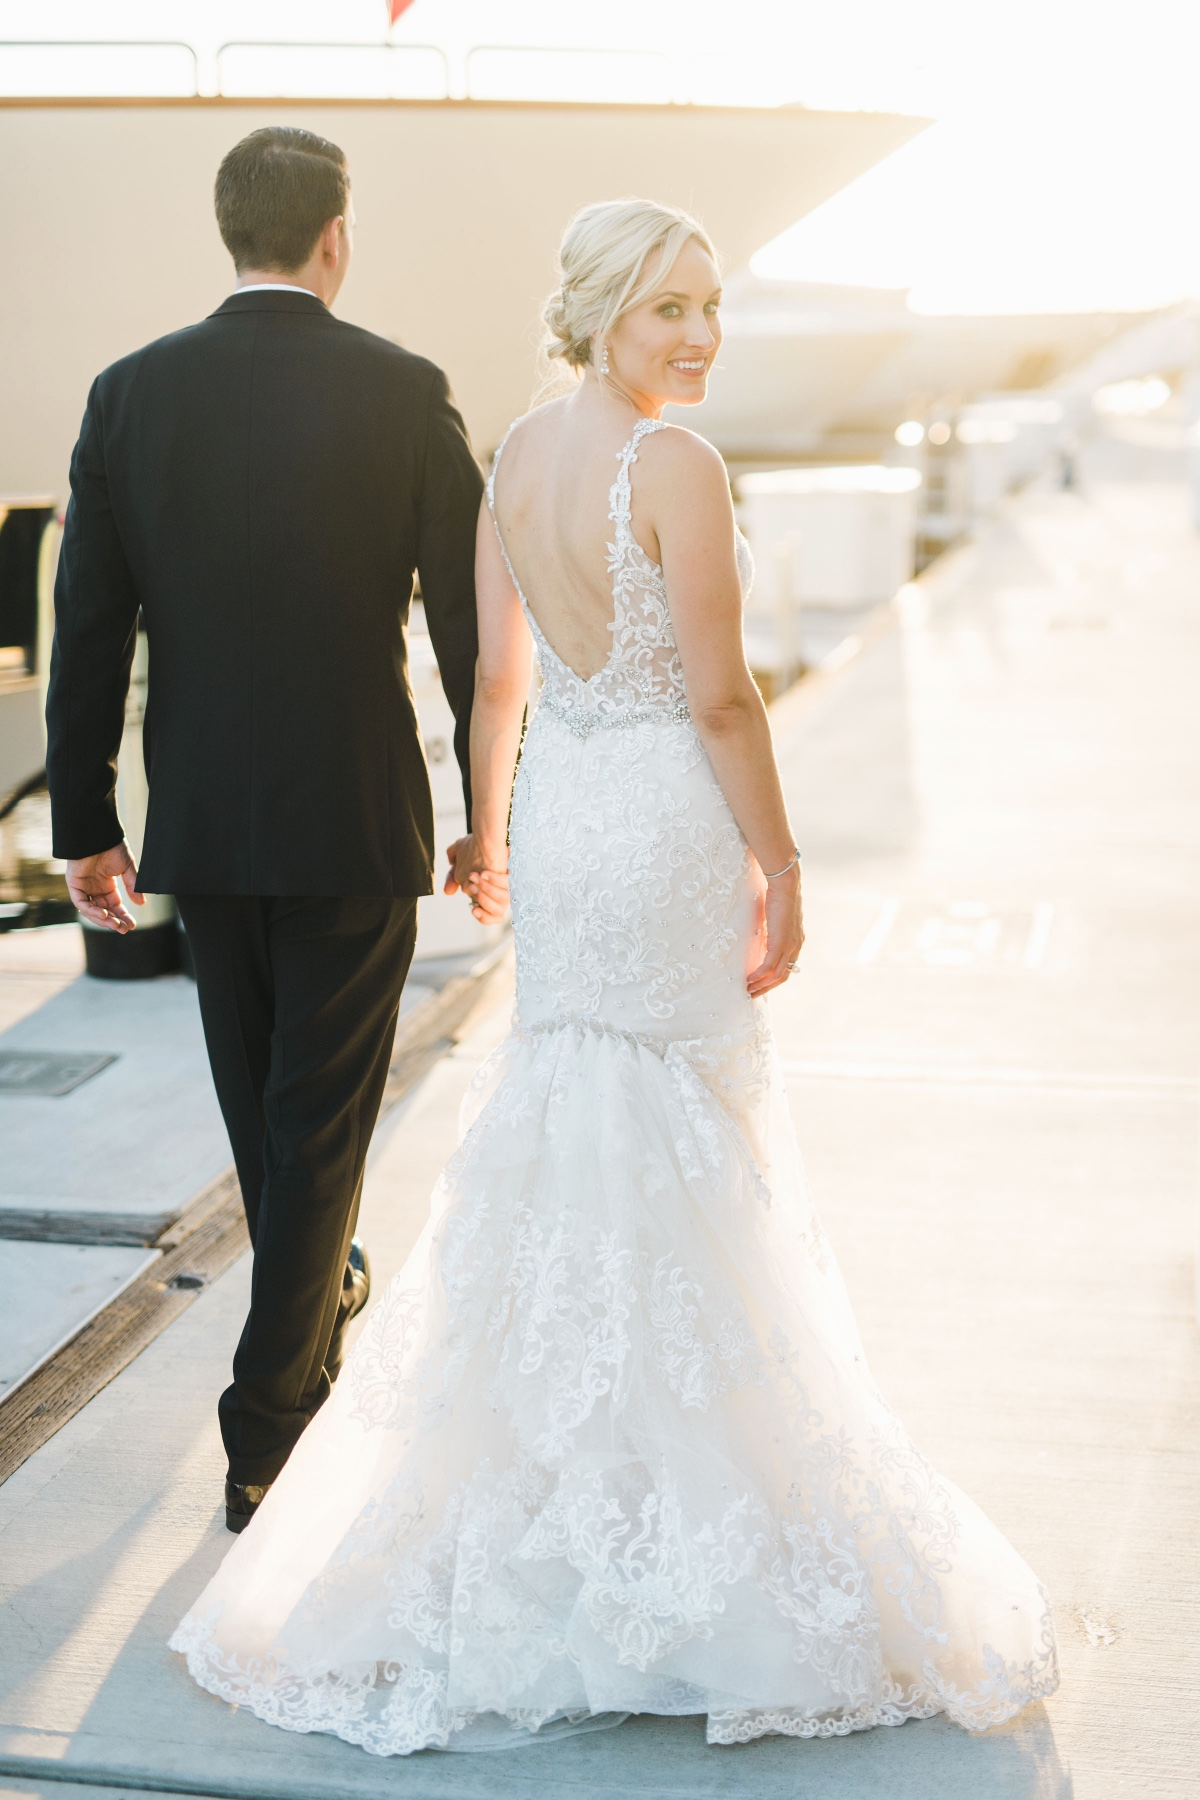 Luxury Balboa Bay Resort wedding